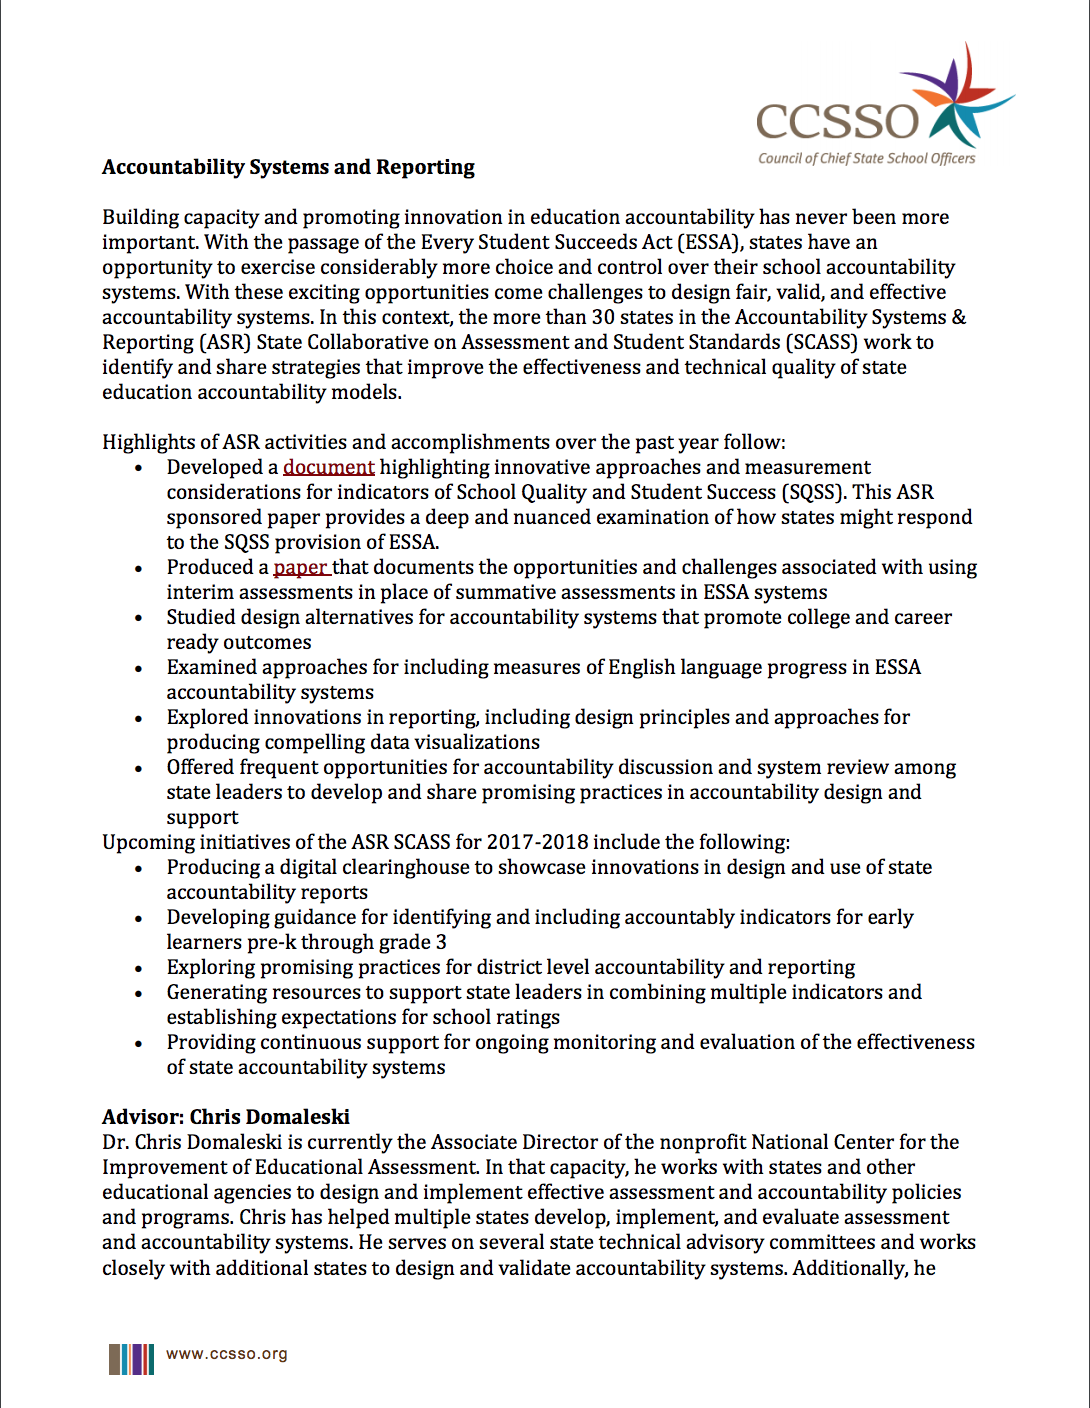 Accountability Systems and Reporting page 1